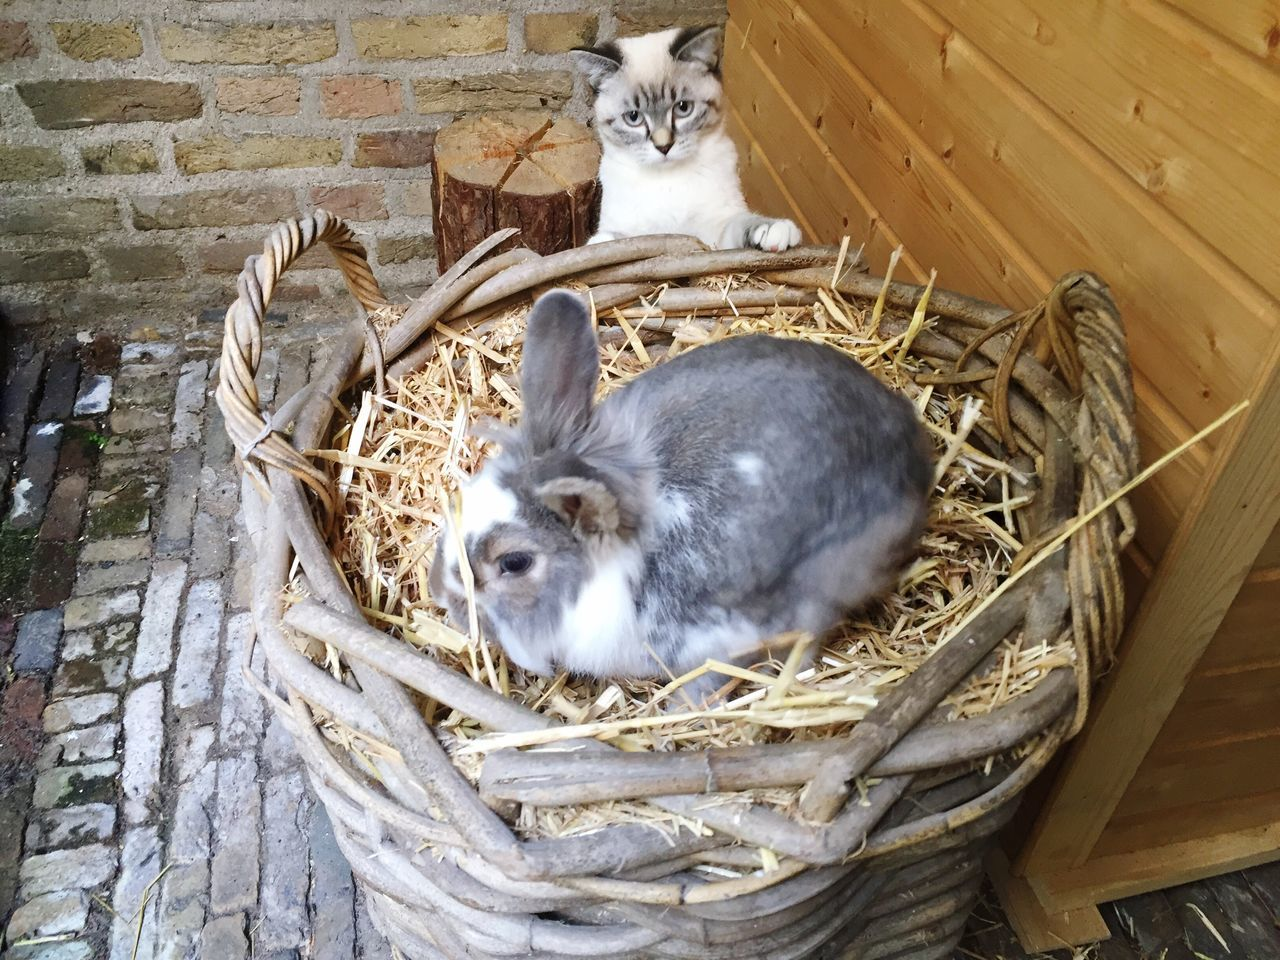 Cat and Rabbit game. Domestic Cat Pets Domestic Animals Animal Themes Cat Bunnie Outdoors Cats Of EyeEm Cats Cat Lovers Cat♡ Rabbit Rabbit ❤️ Rabbit Rabbits 🐇